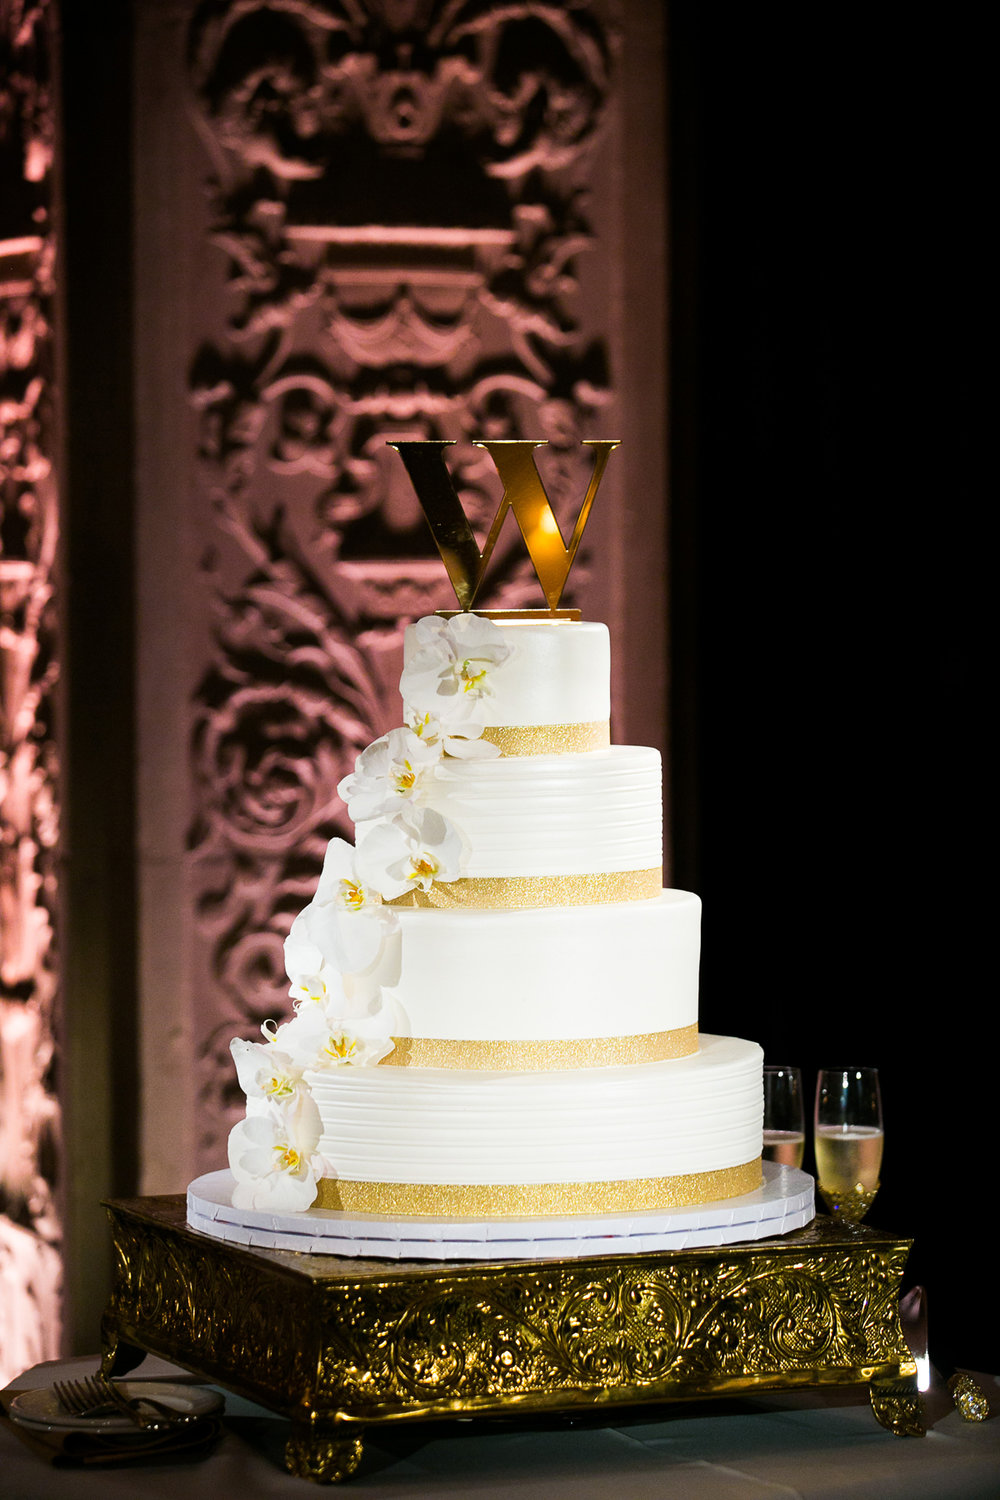 Dreamy Romantic Wedding at Historic Los Angeles Ebell Club wedding cake accented with gold.jpg